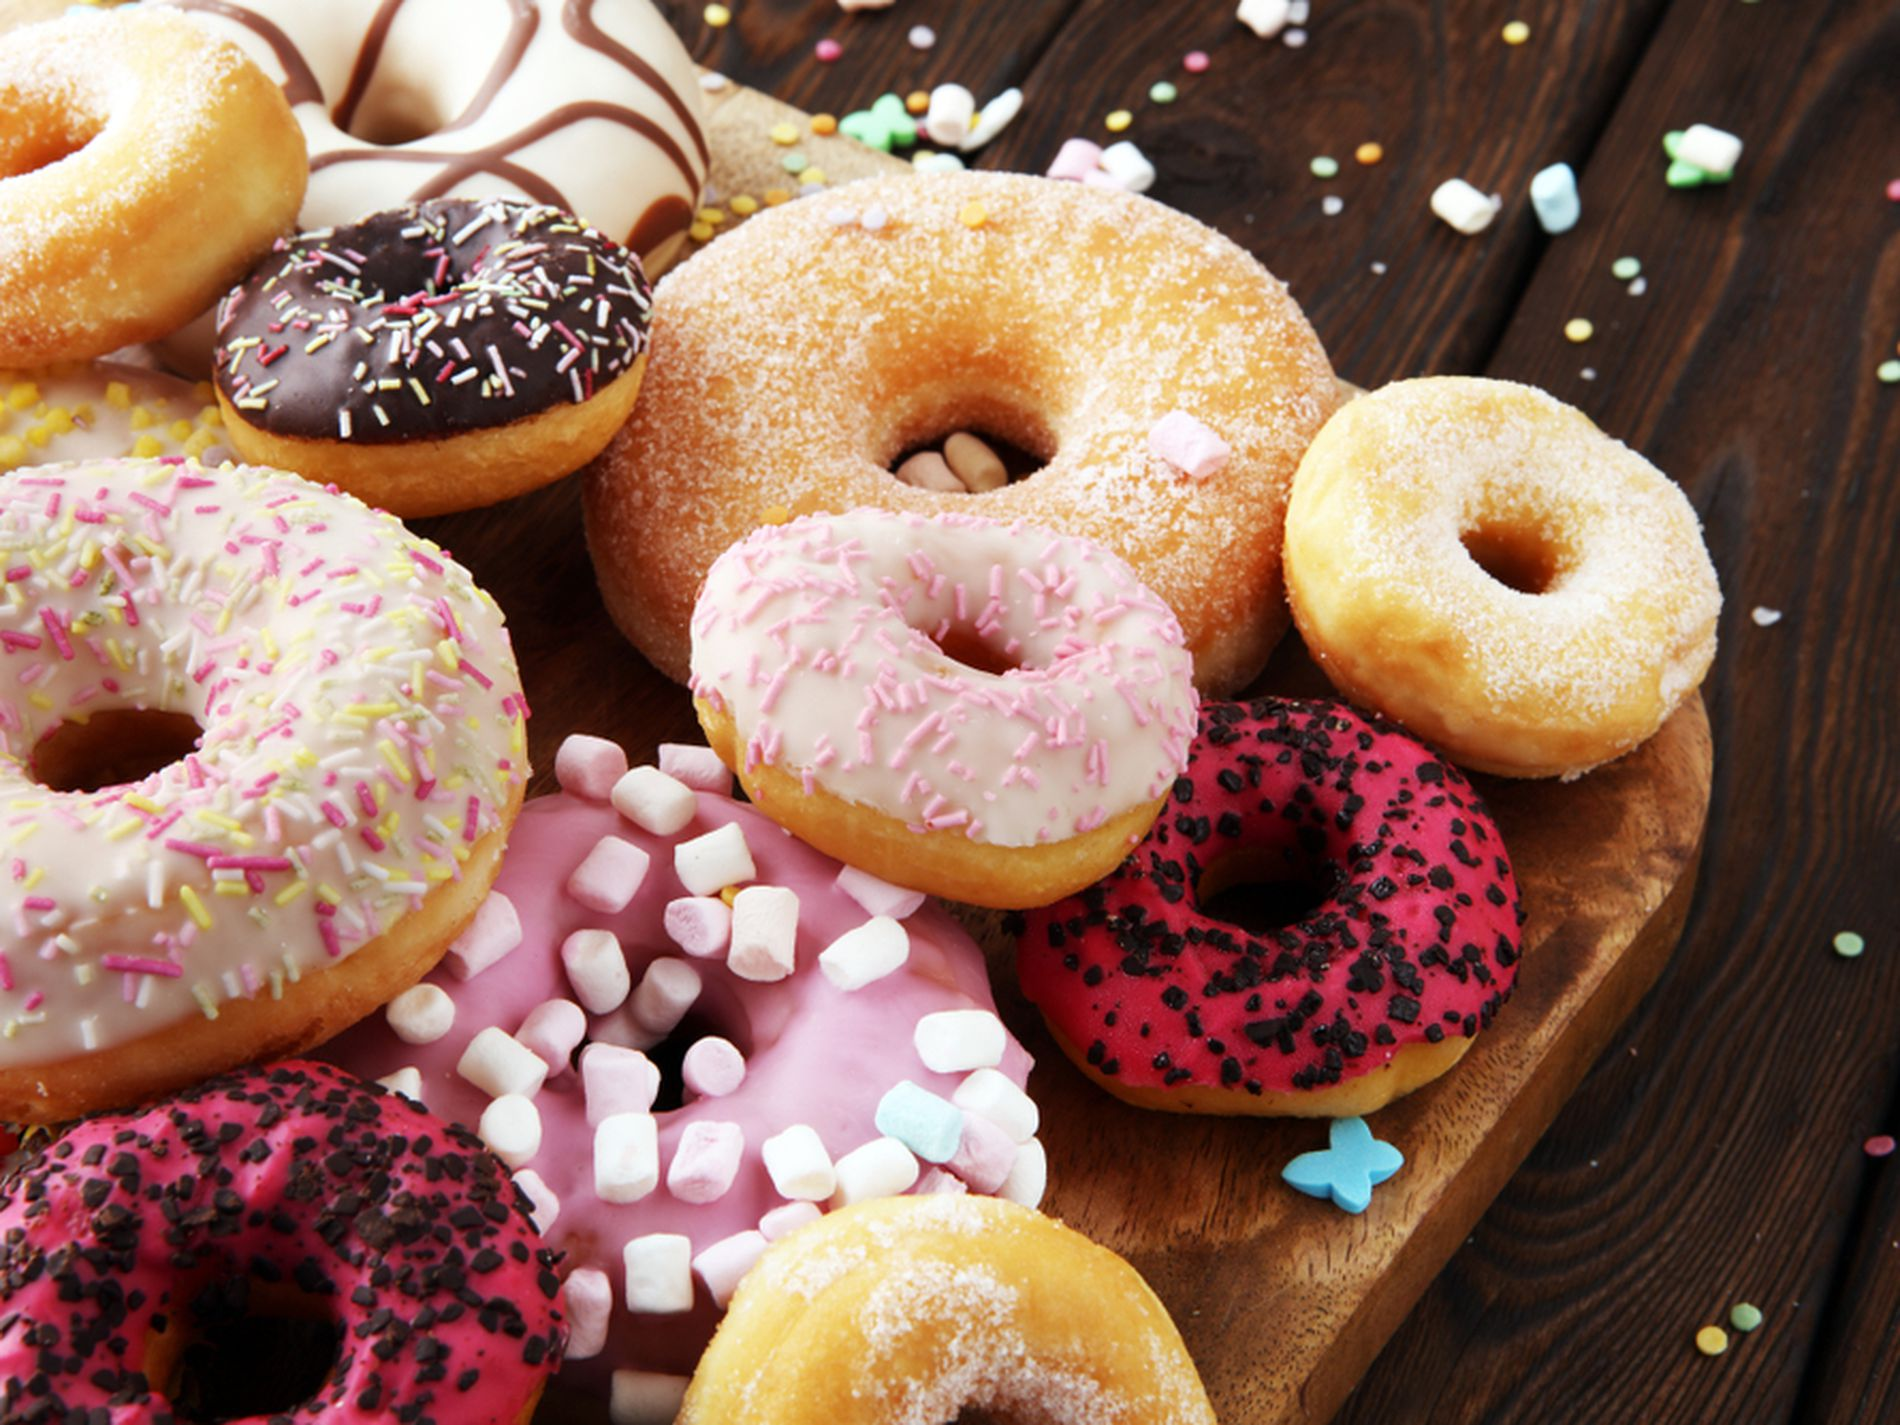 Cake, Donut and Cafe Business for Sale in South East